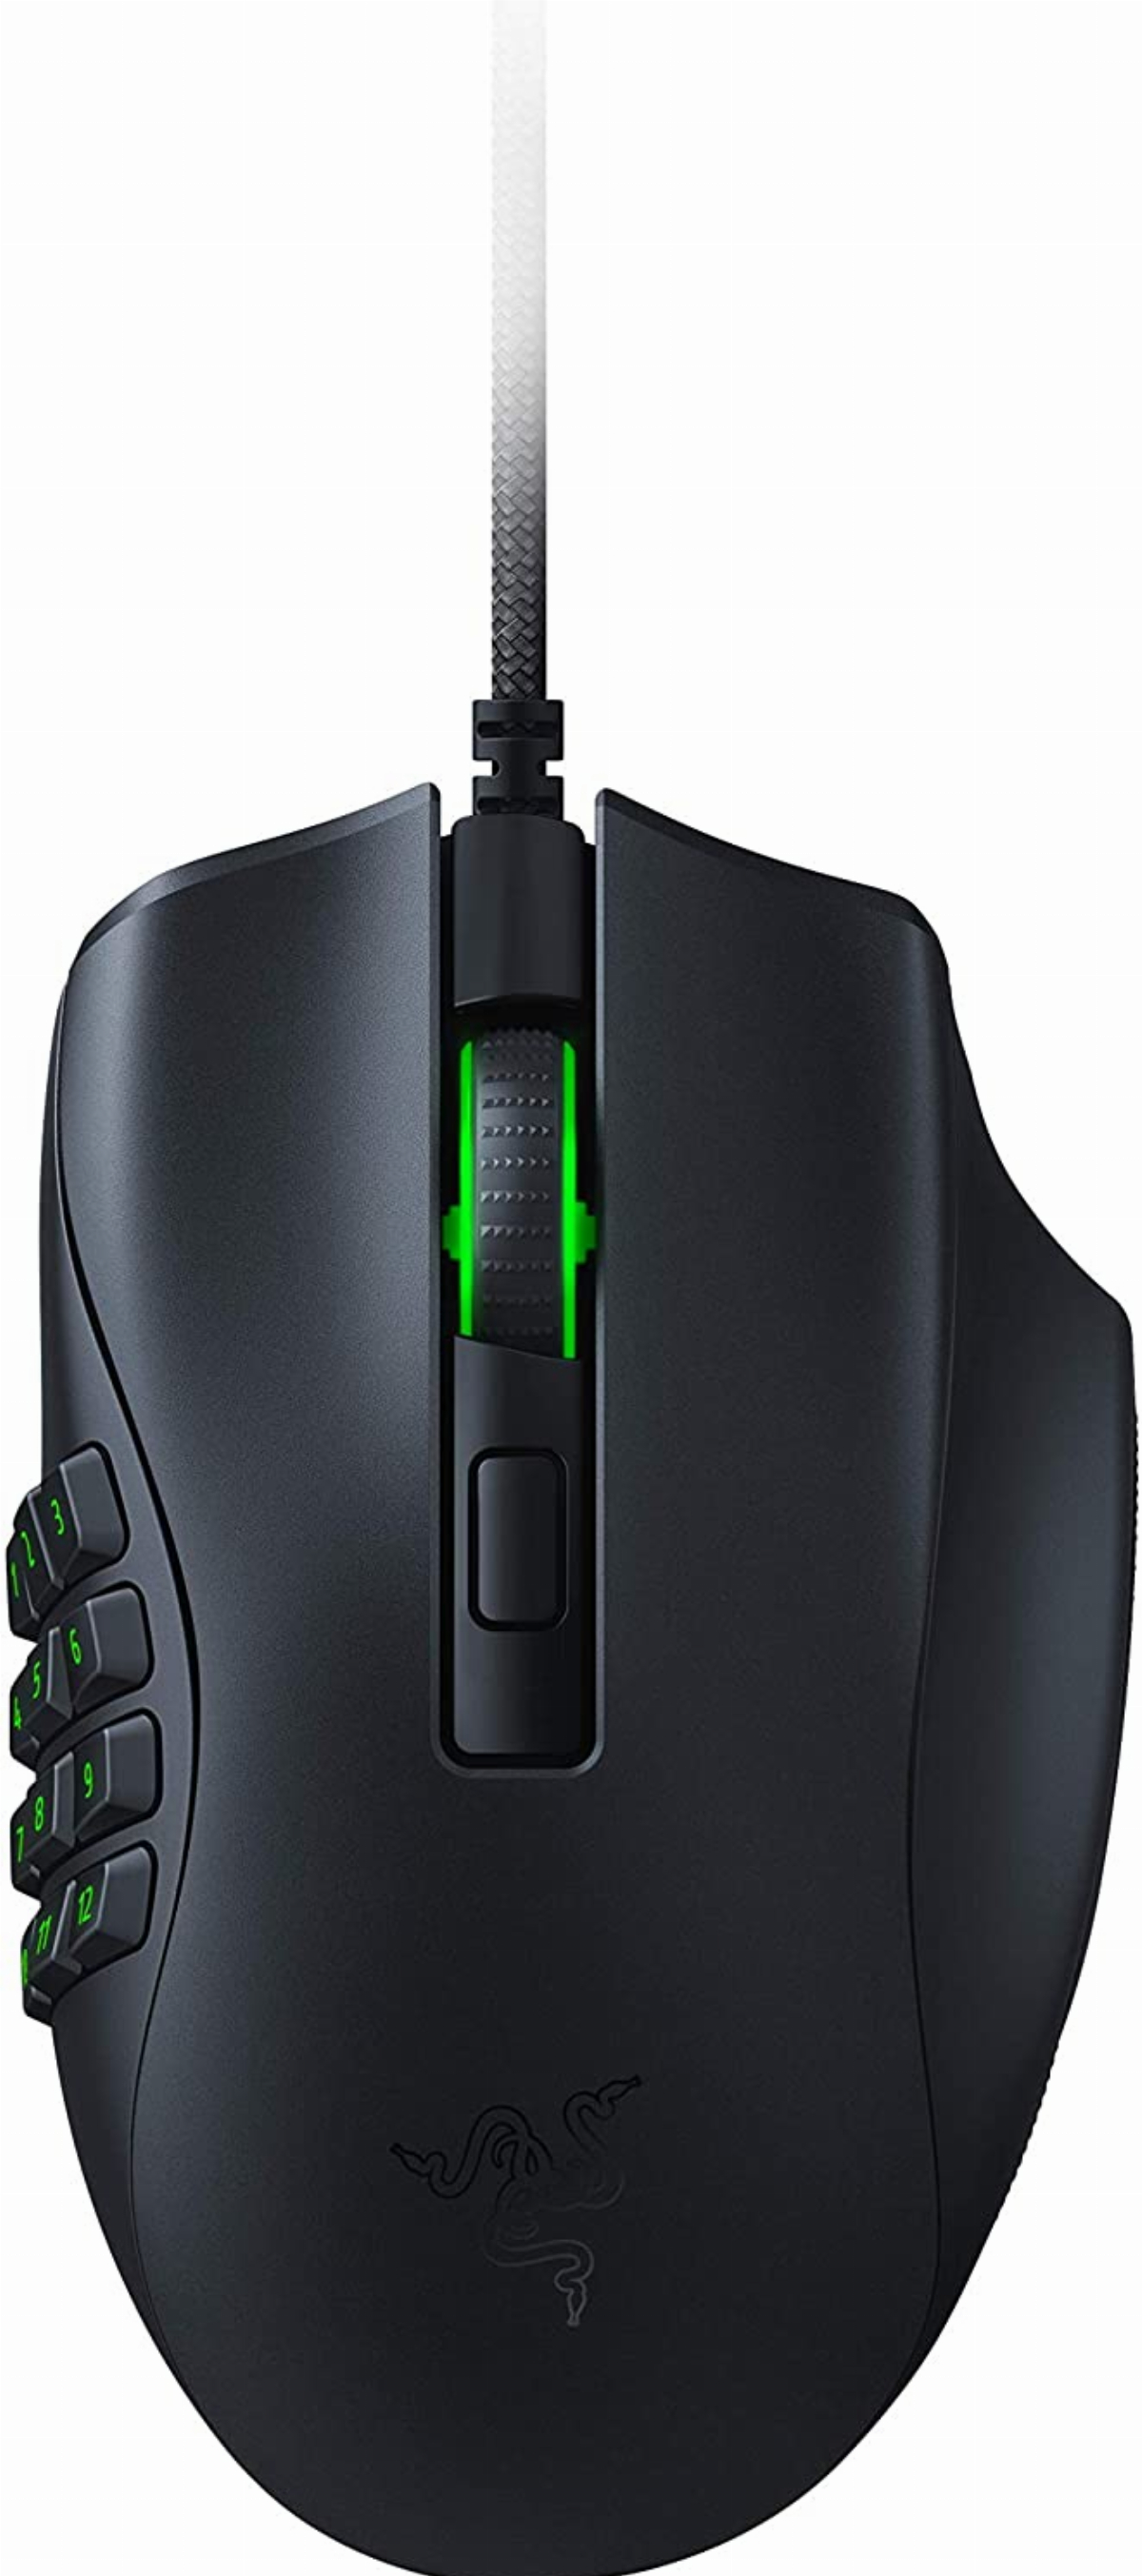 Геймърска мишка Razer Naga X Optical Gaming Mouse